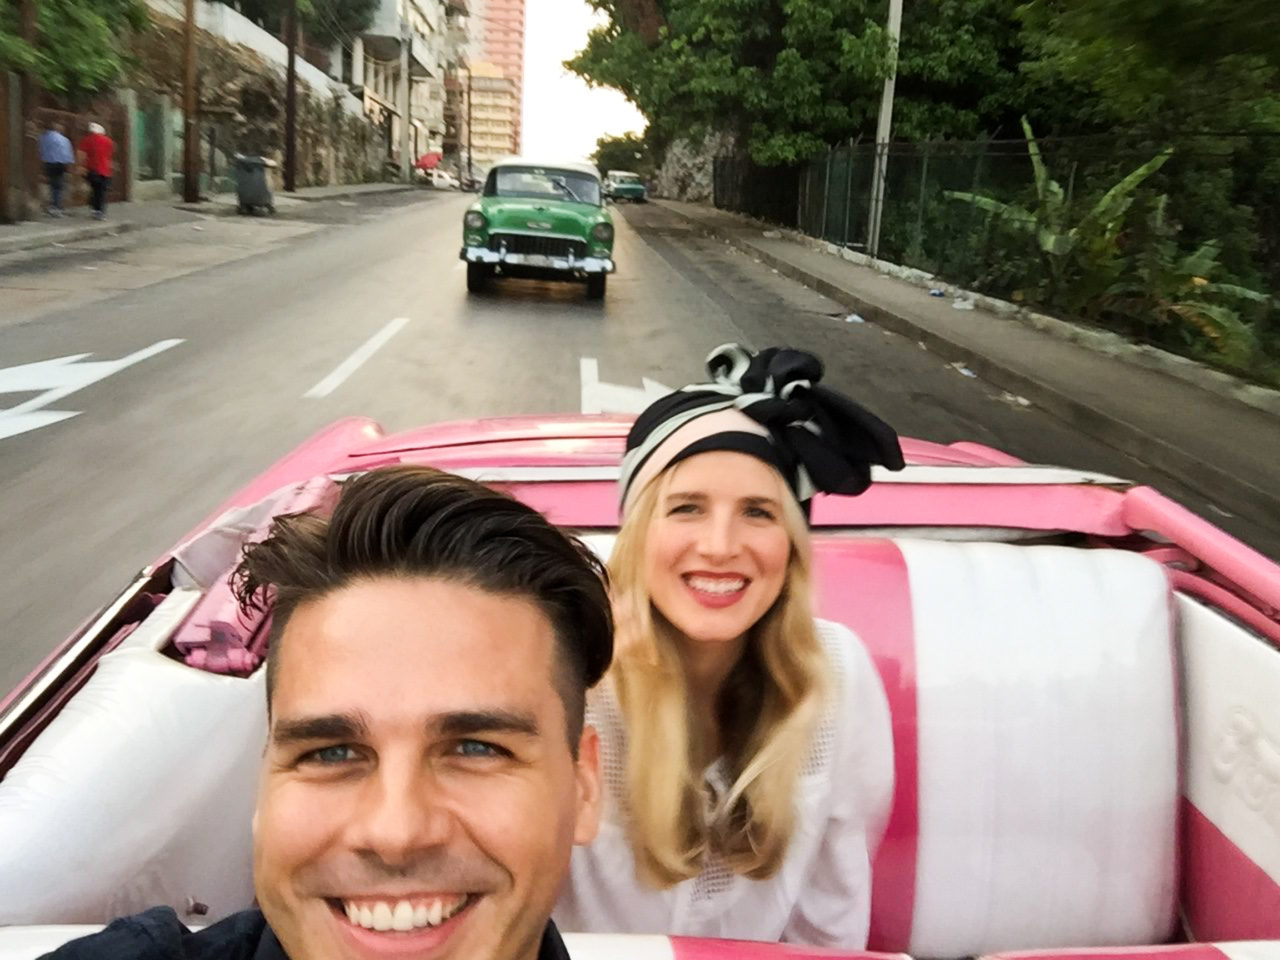 Mrkate_cubaOutfit_RidingCar (1 of 1)